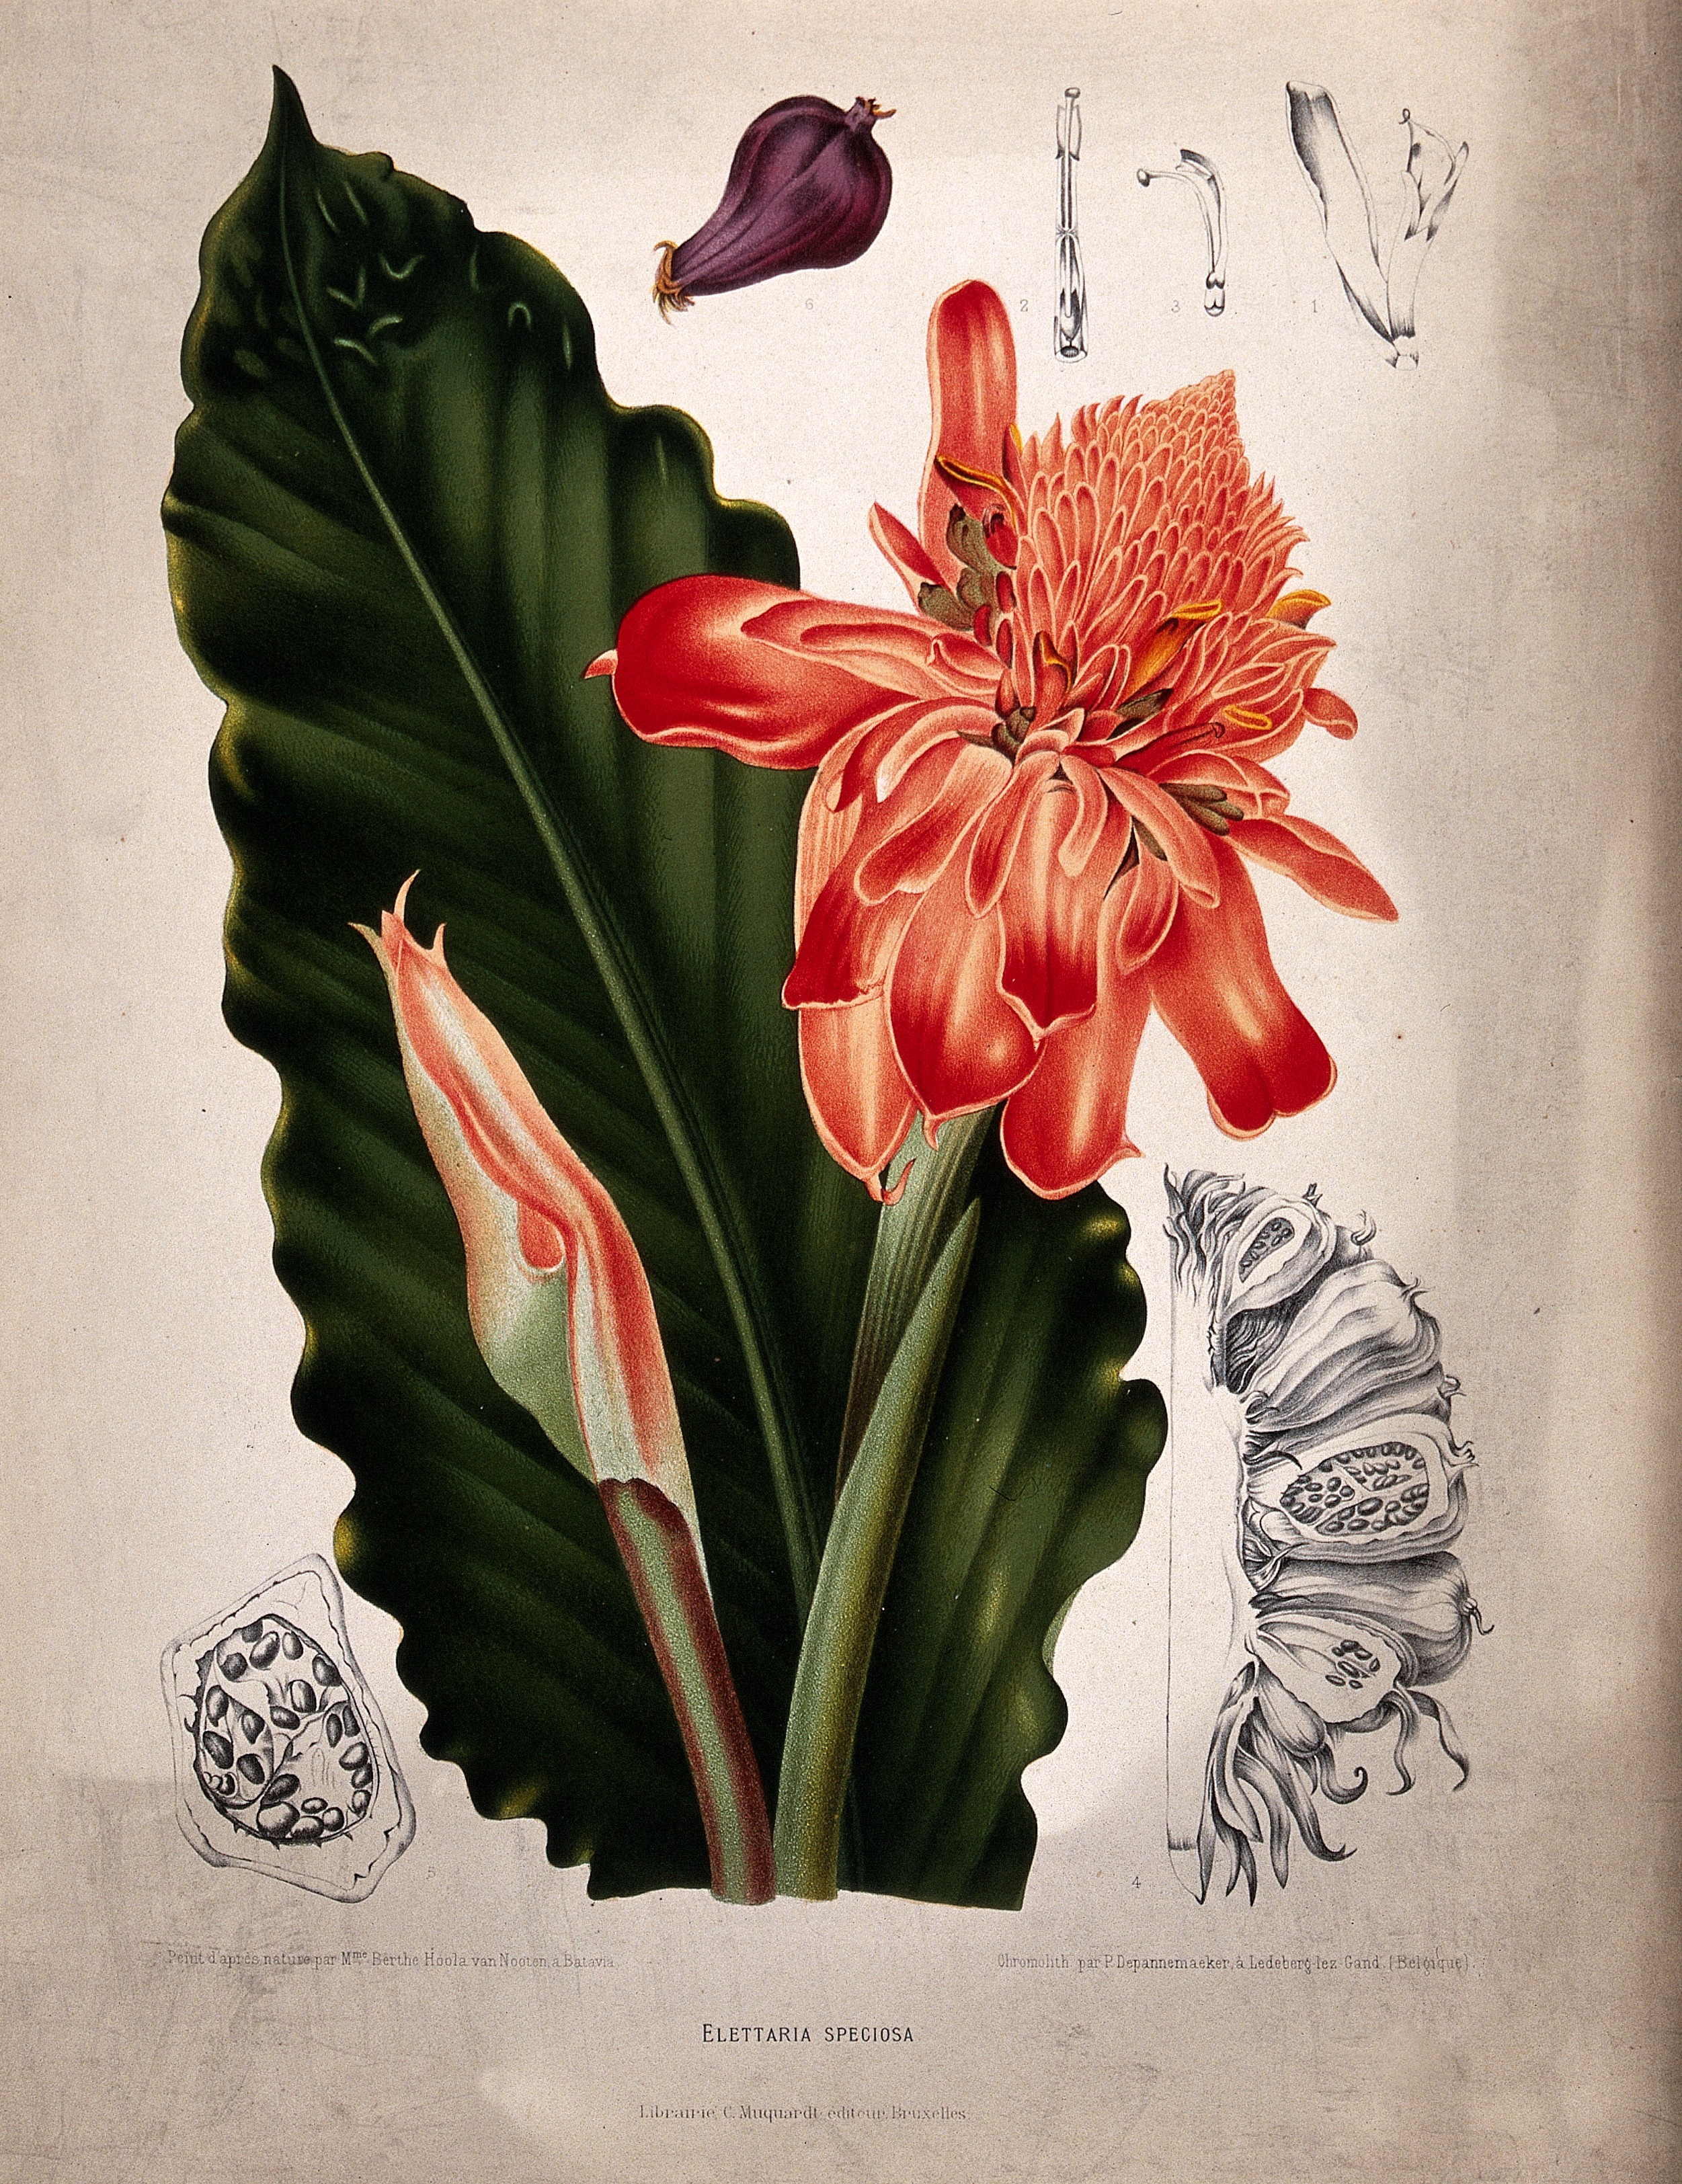 Datei:A plant (Elettaria speciosa Blume); flowering shoots with le ...